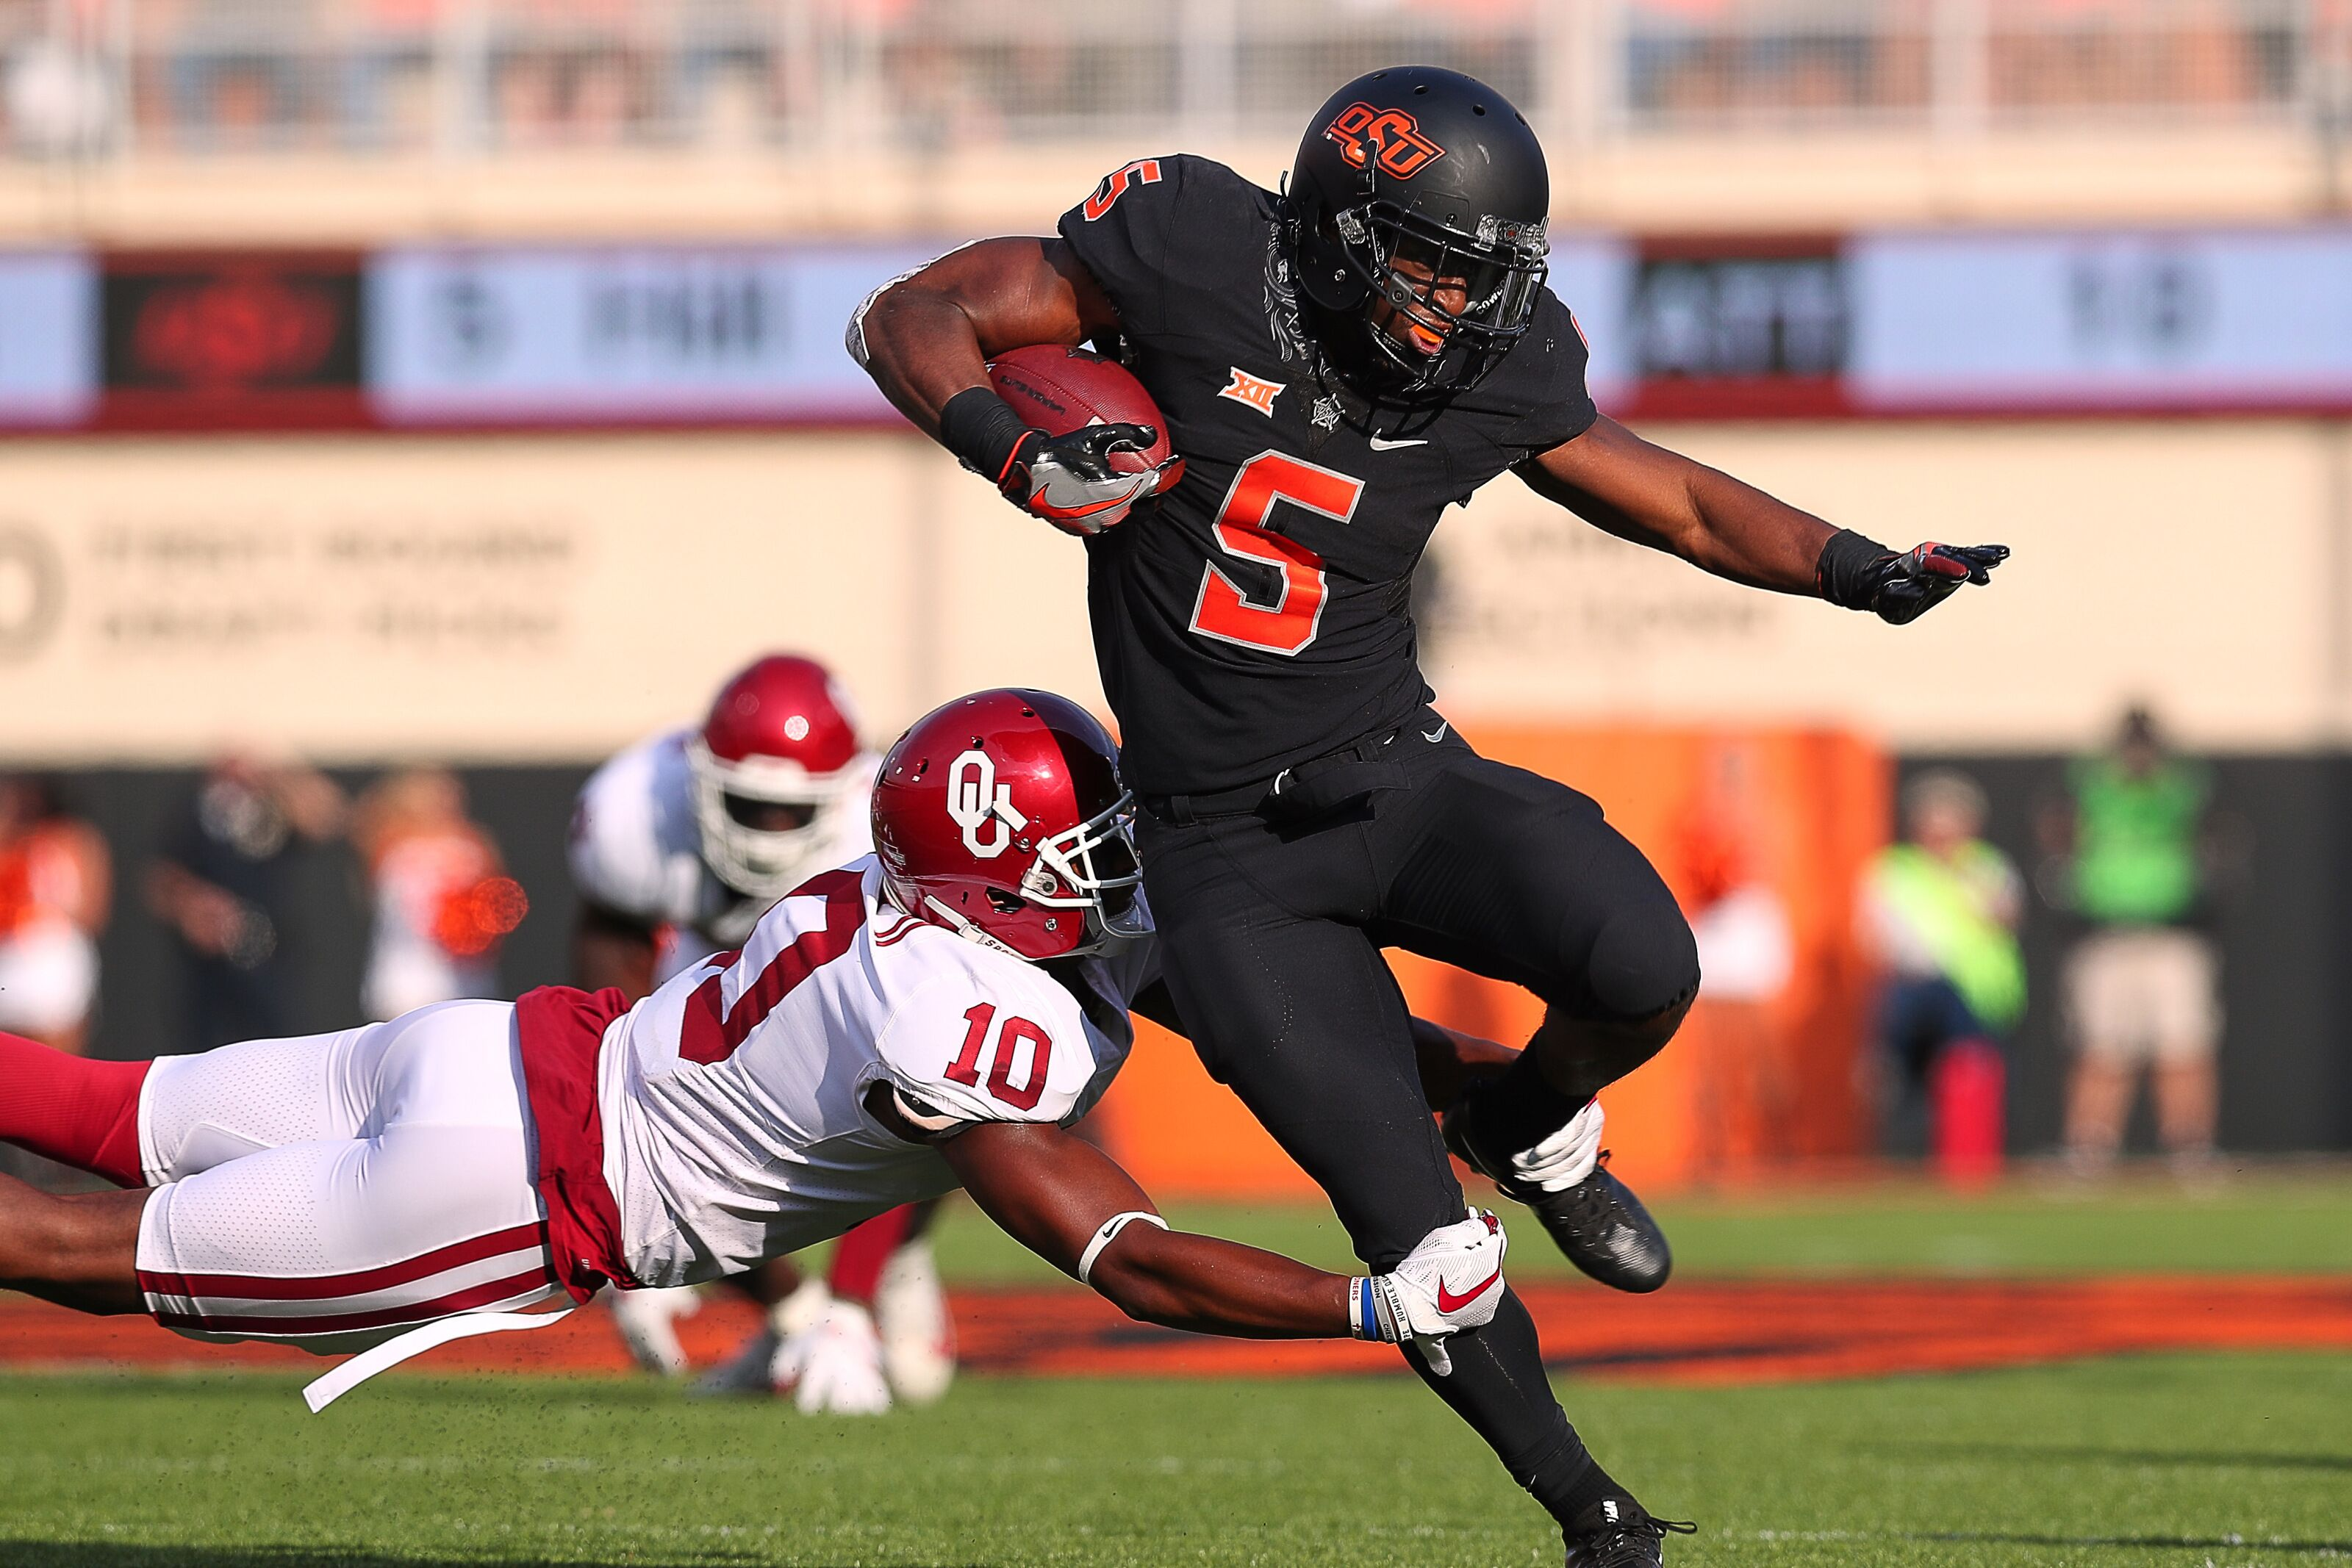 Oklahoma State football schedule 2019: Game-by-game predictions